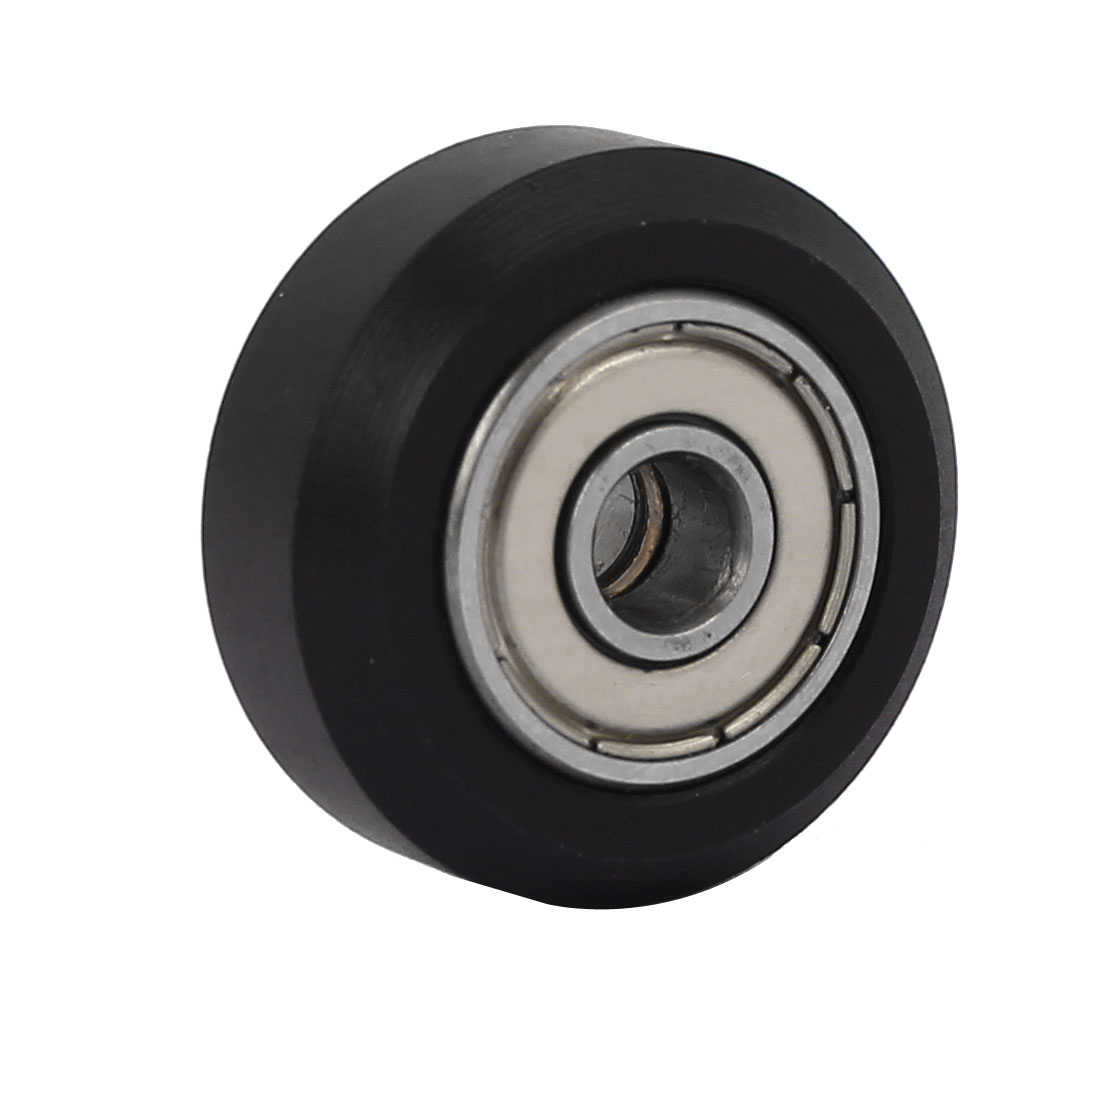 24mm x 5mm x 11mm Plastic Coated Pulley Tire Roller Wheel Arc Ball Bearing Black